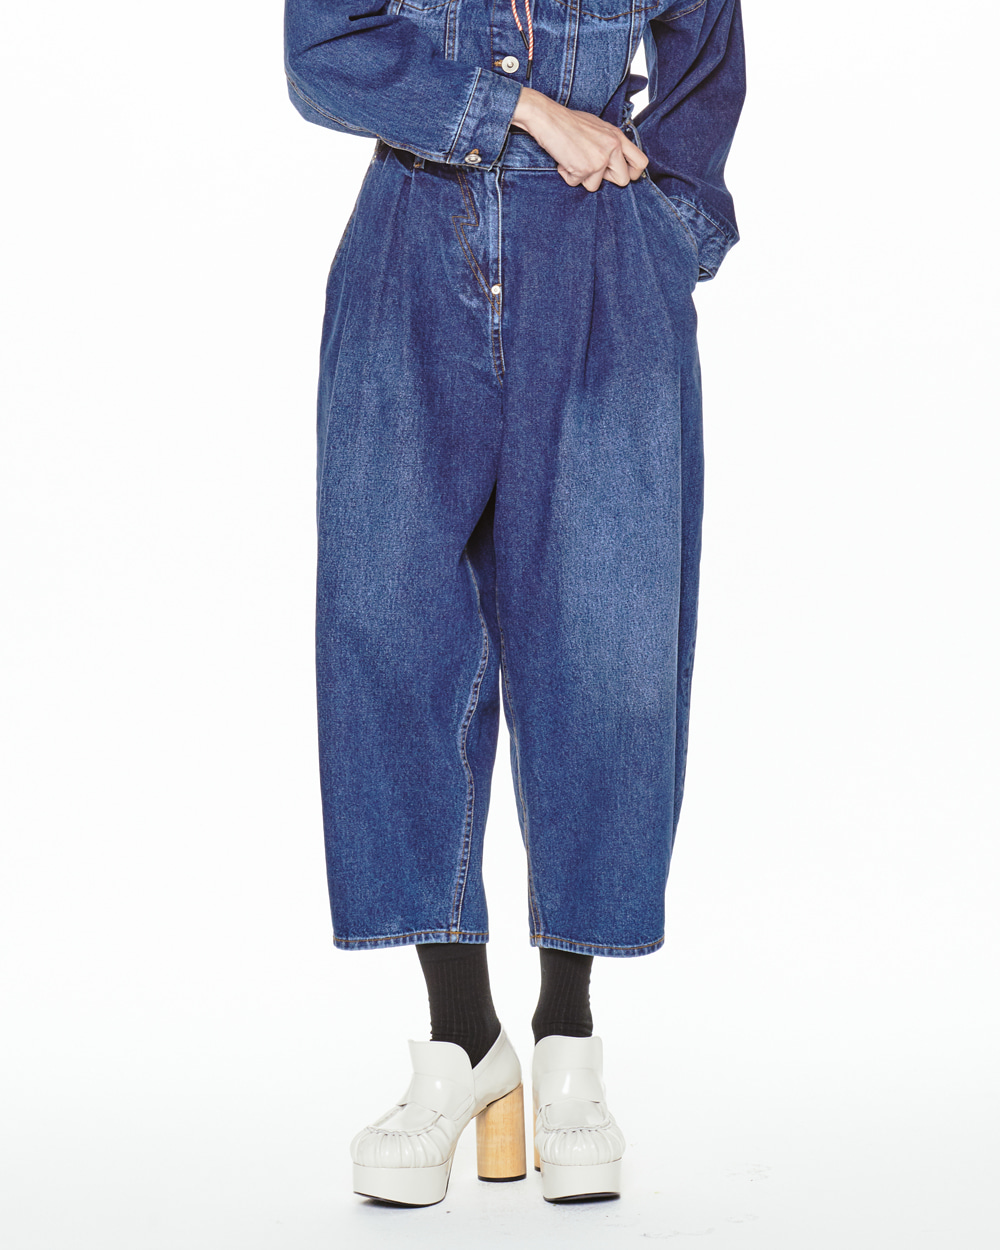 FW20 DENIM SLOUCH PANTS